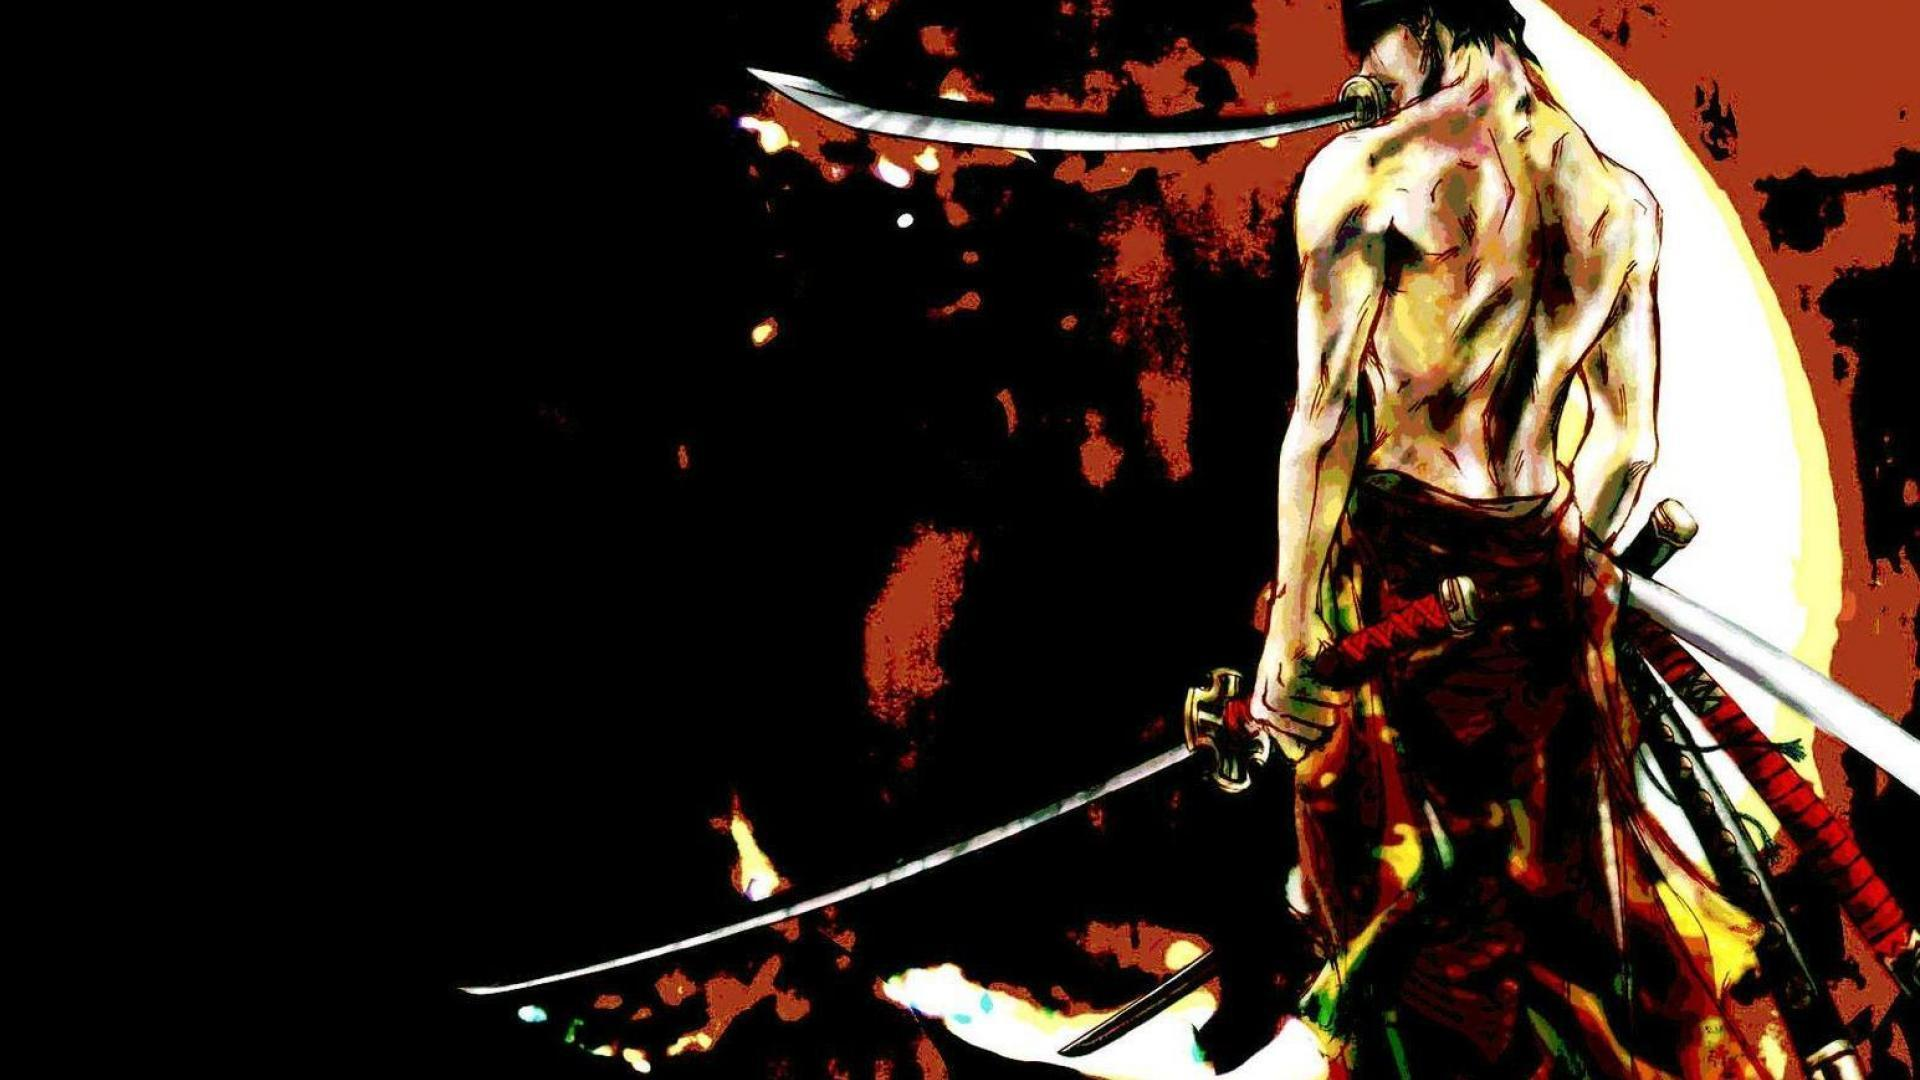 Download zedge™ app to view this. Roronoa Zoro Wallpapers - Wallpaper Cave